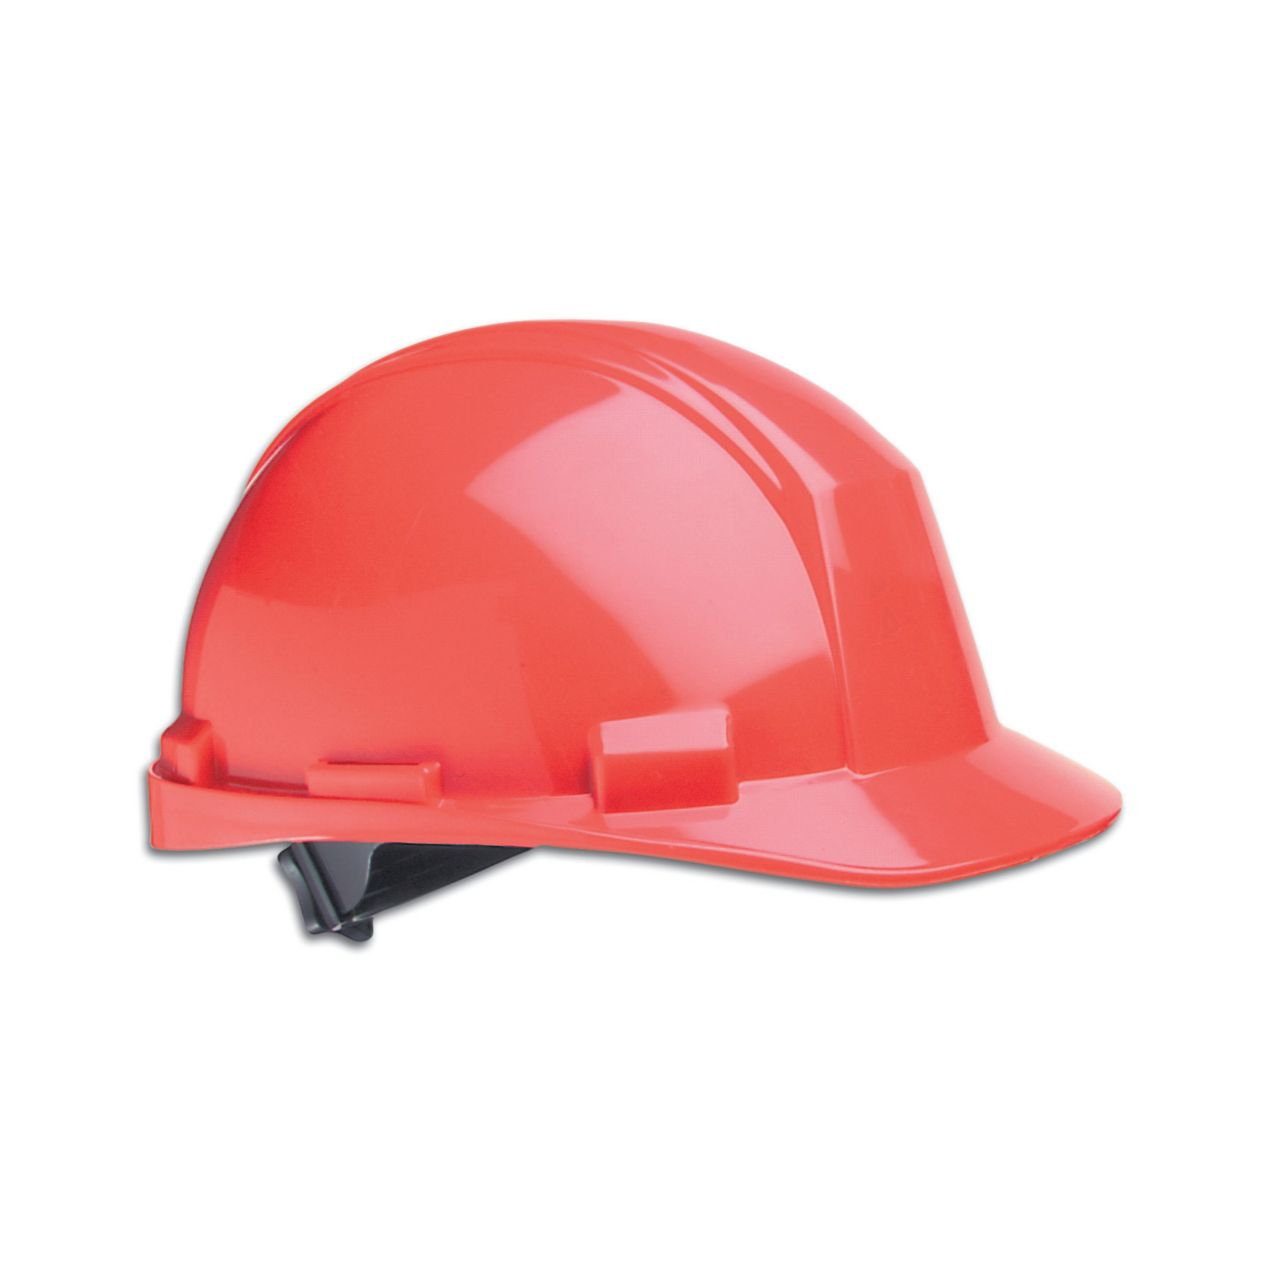 A89R_red_North_Hard_Hat